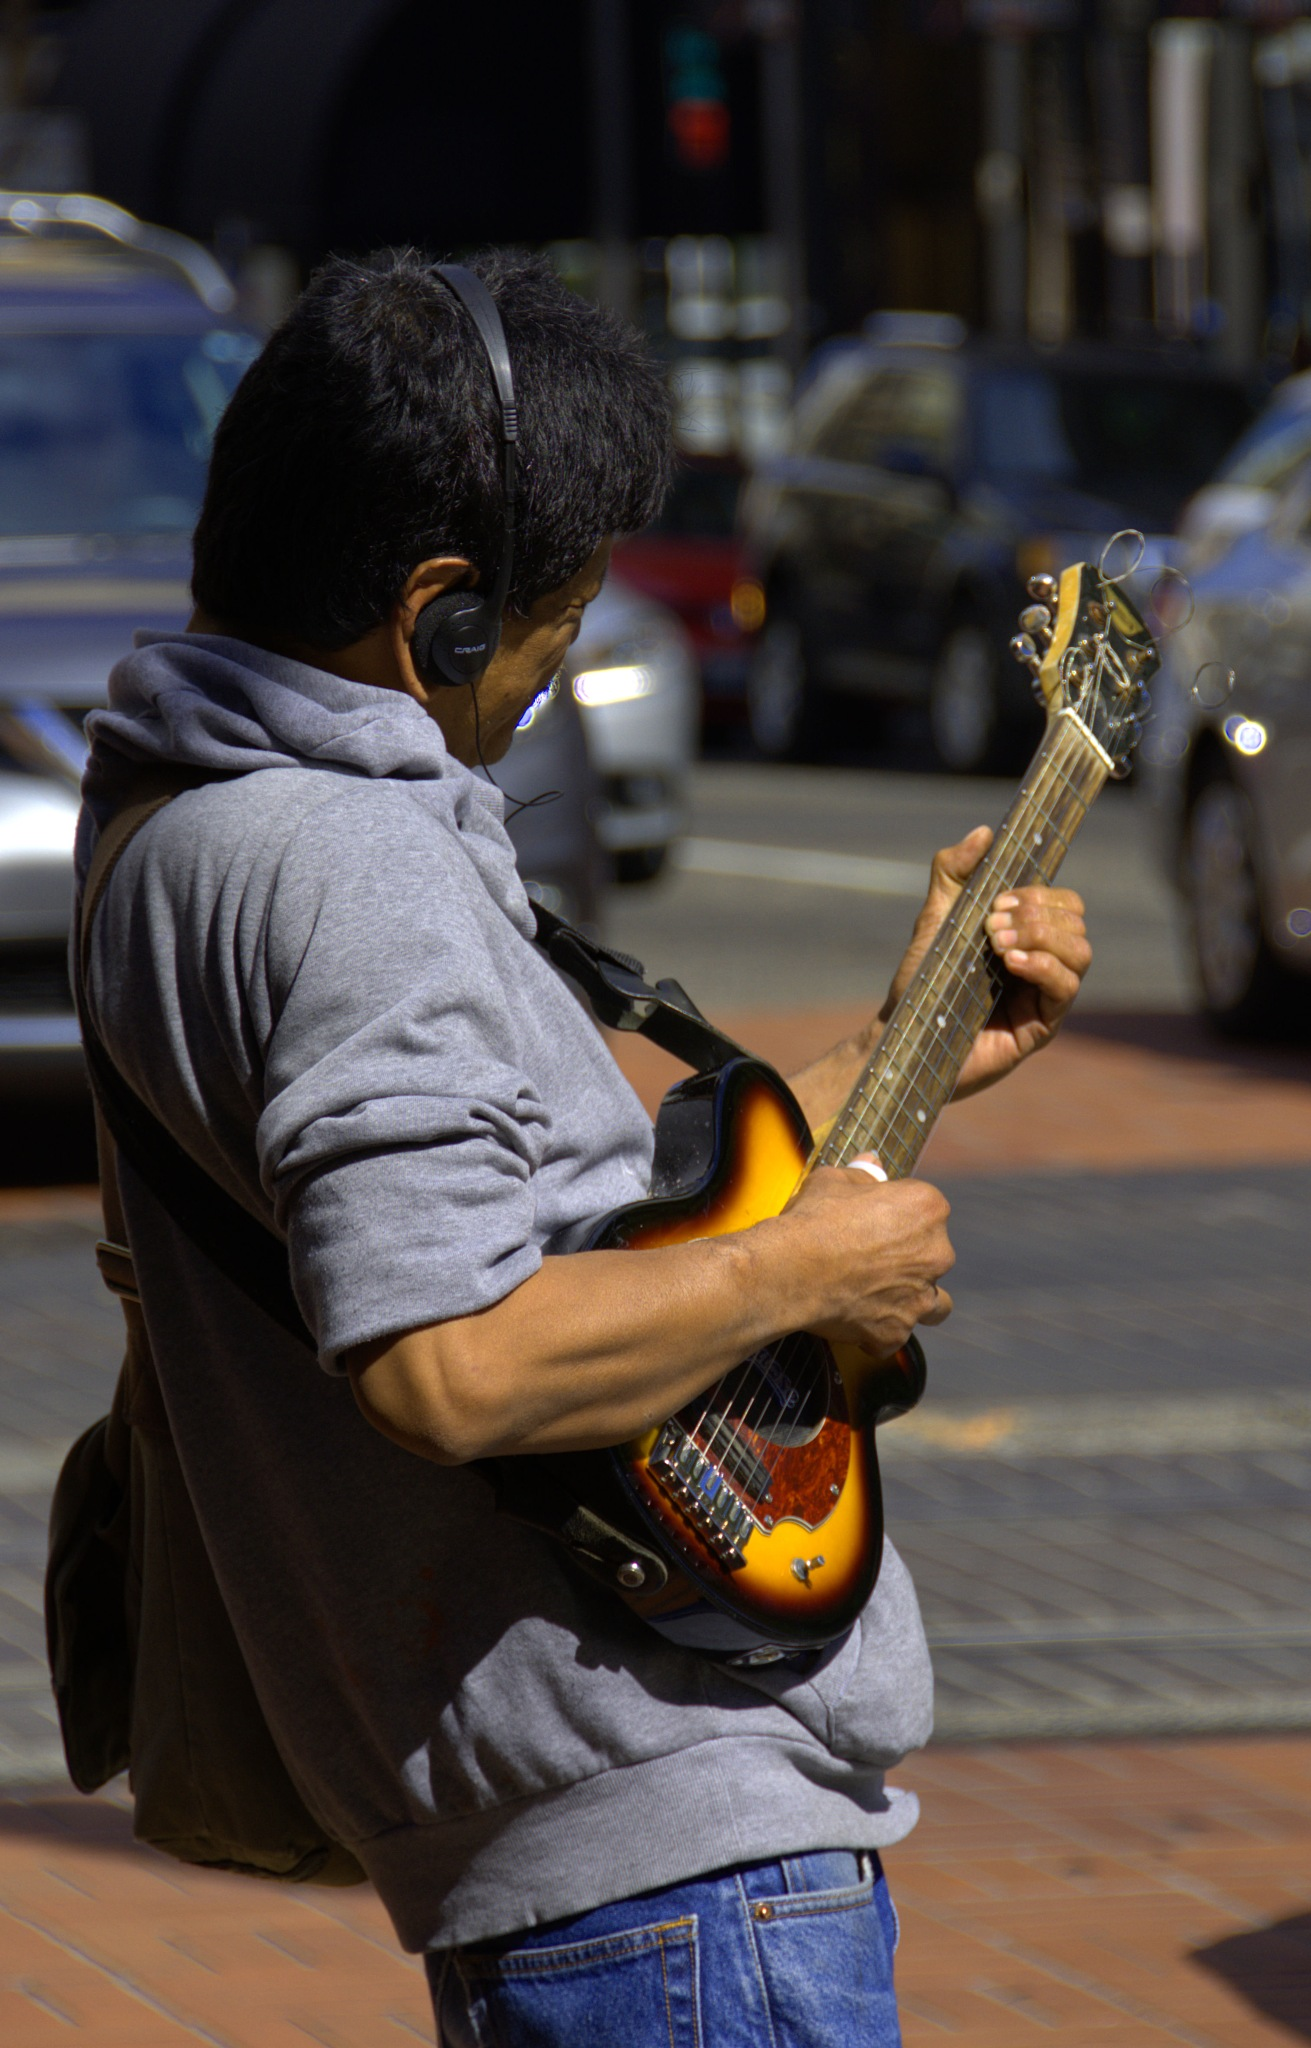 Street Musician by pscottwong